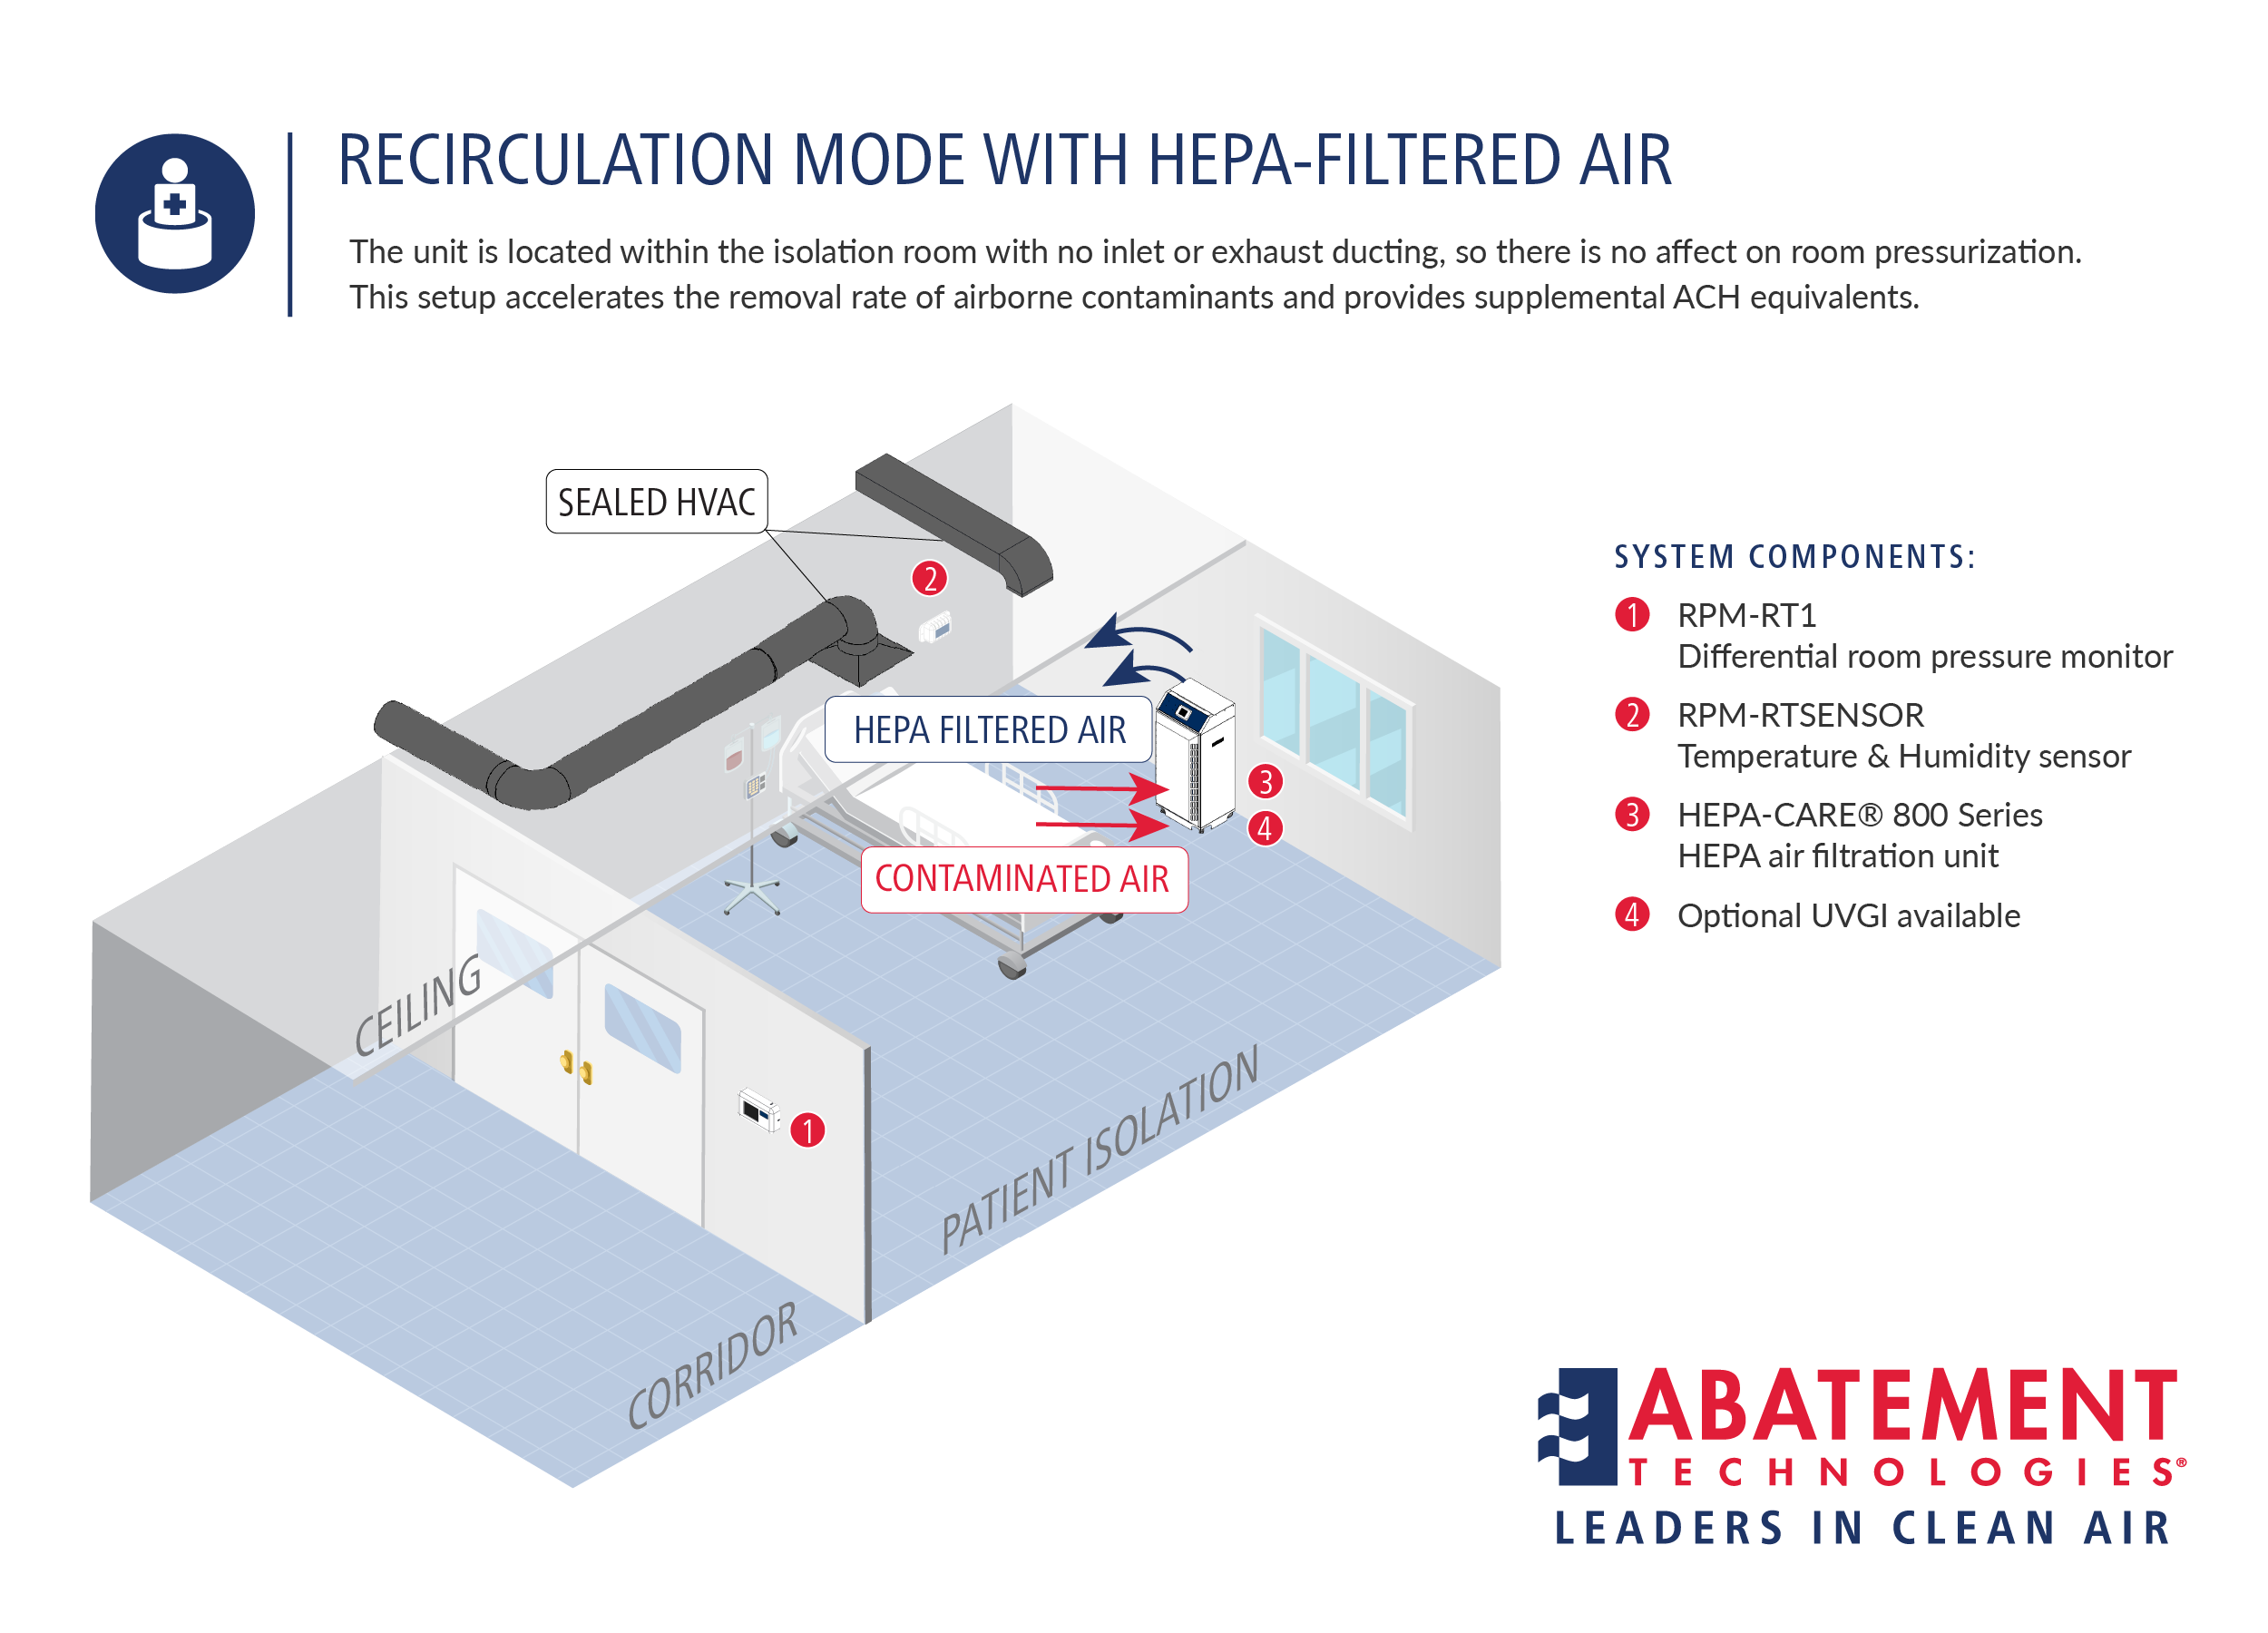 patient isolation recirculation mode with hepa filtered air